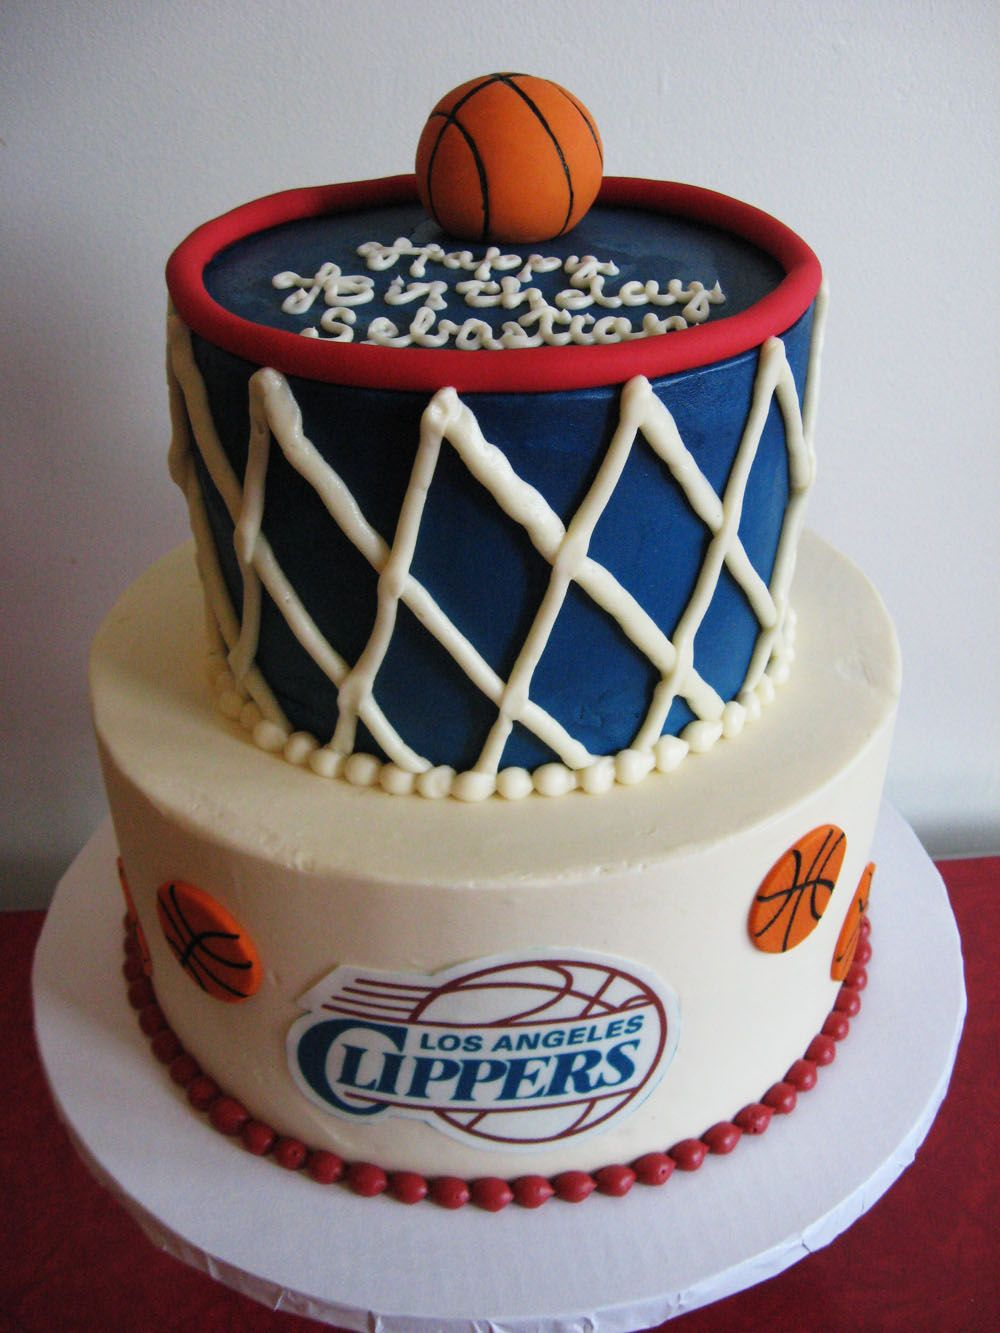 LA Clippers cake CUTE CAKES Pinterest Cake Boy cakes and